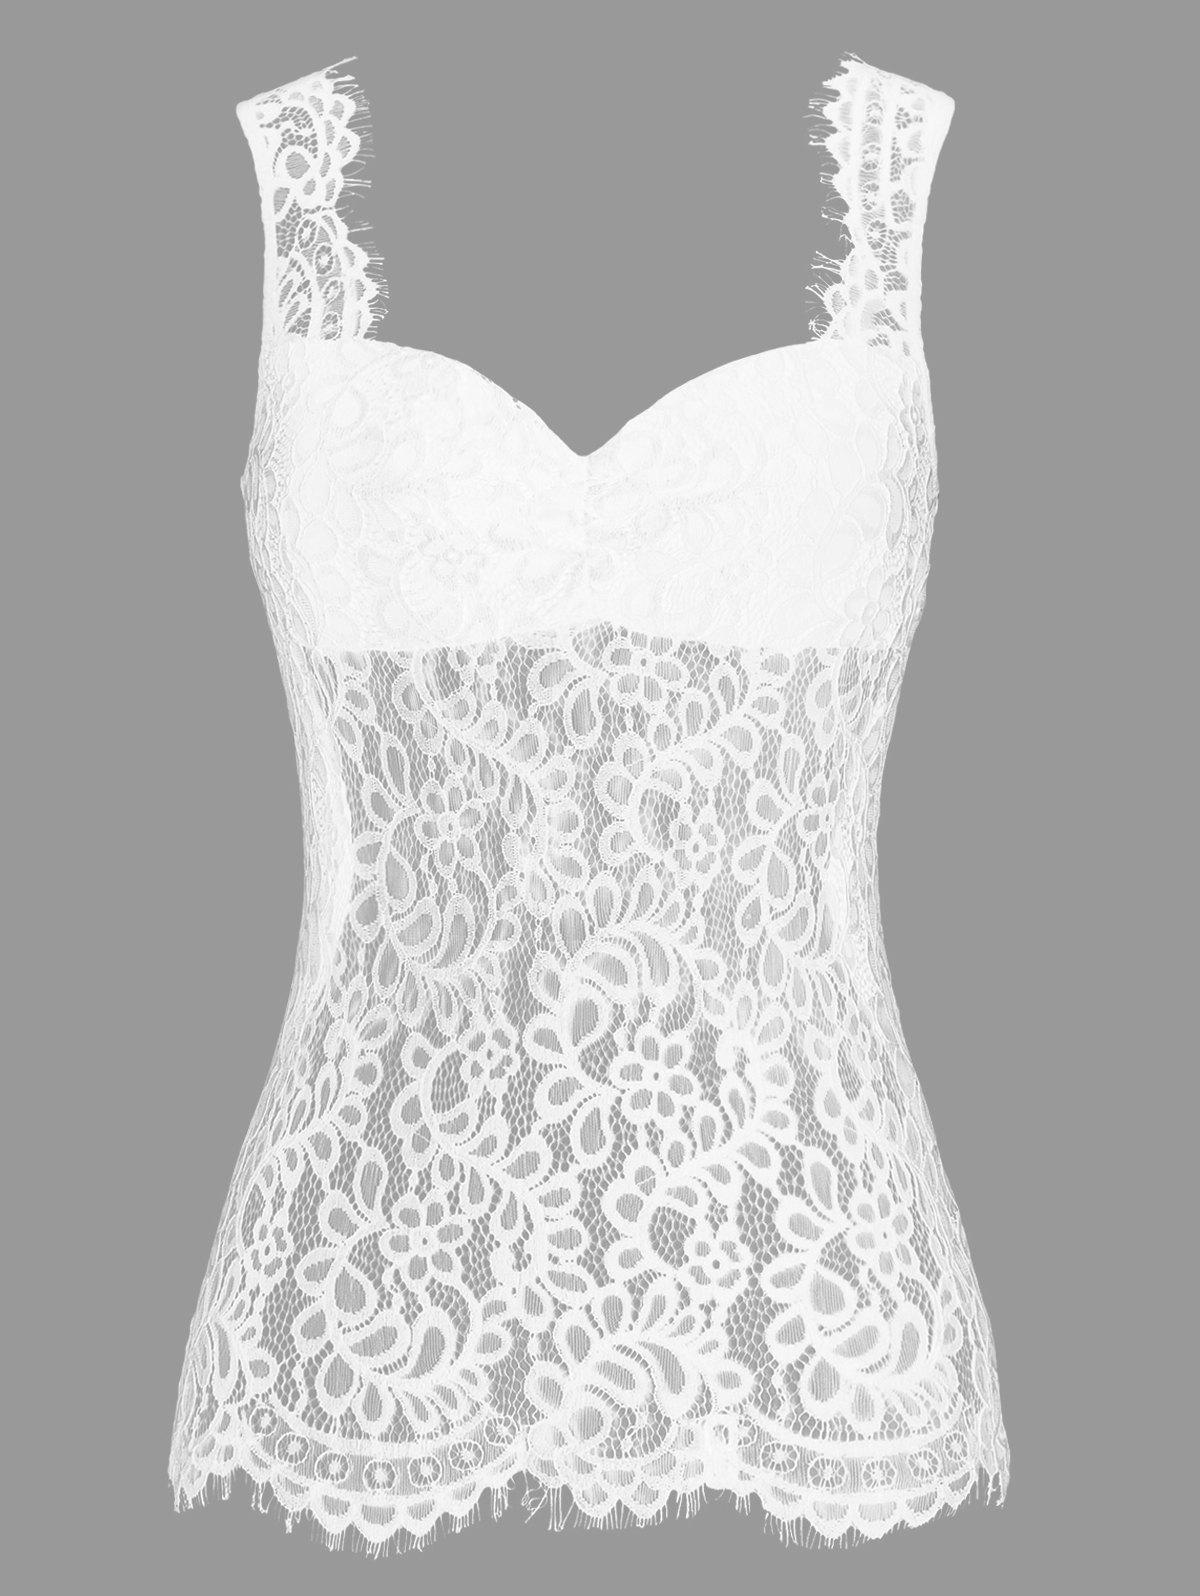 Fashion See Thru Openwork Lace Panel Tank Top